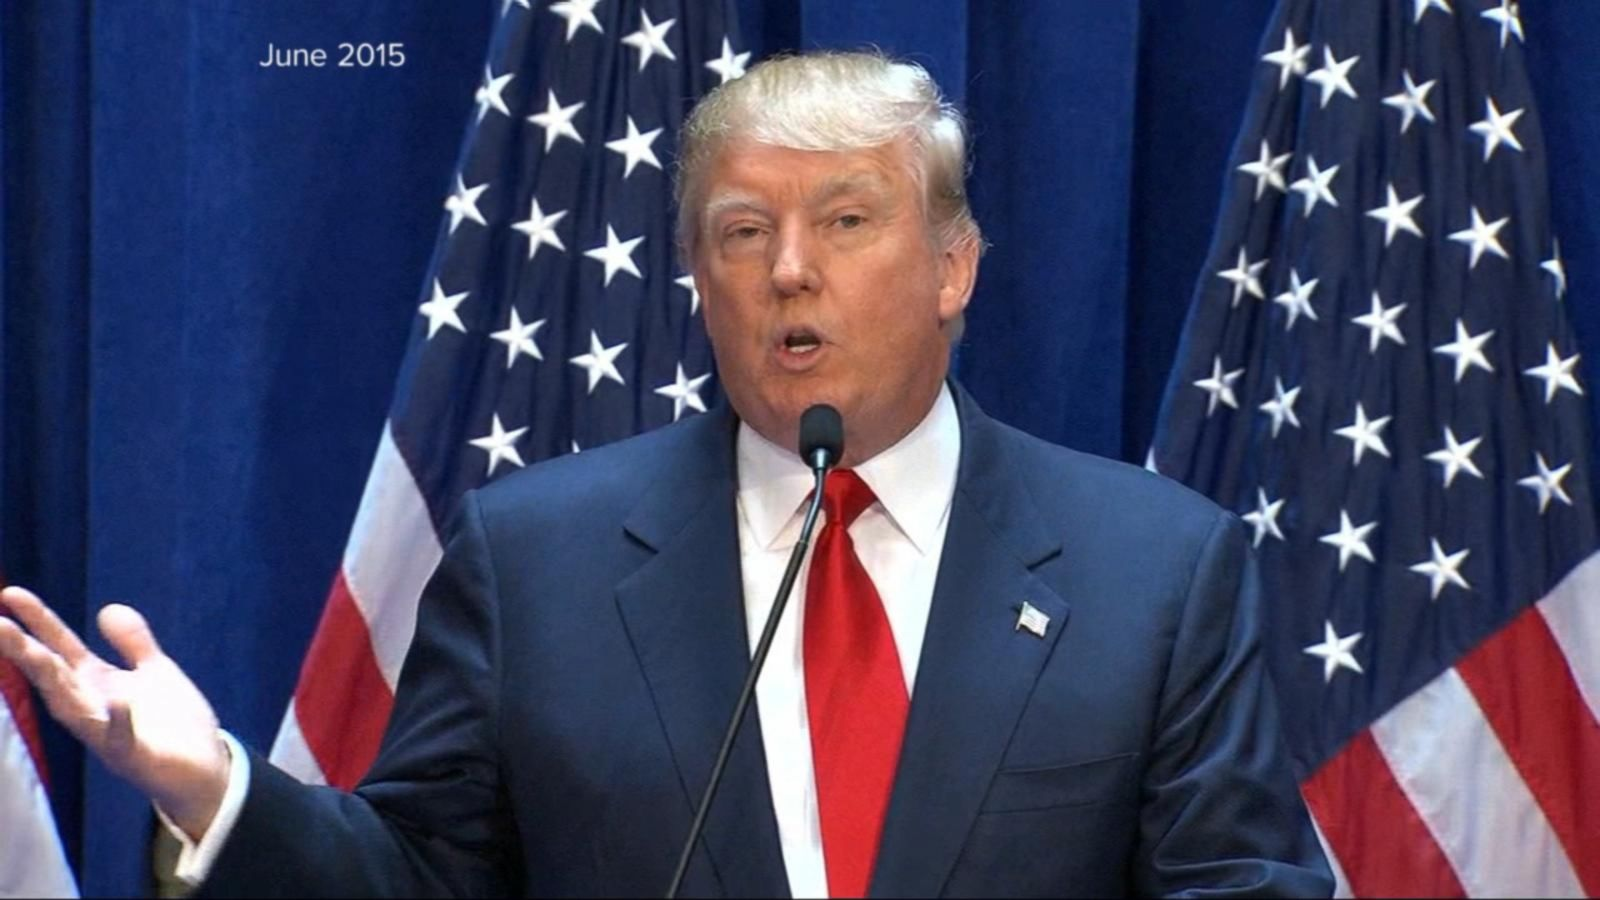 VIDEO: Donald Trump Says Immigration Policy Will Be Fair but Firm Answer